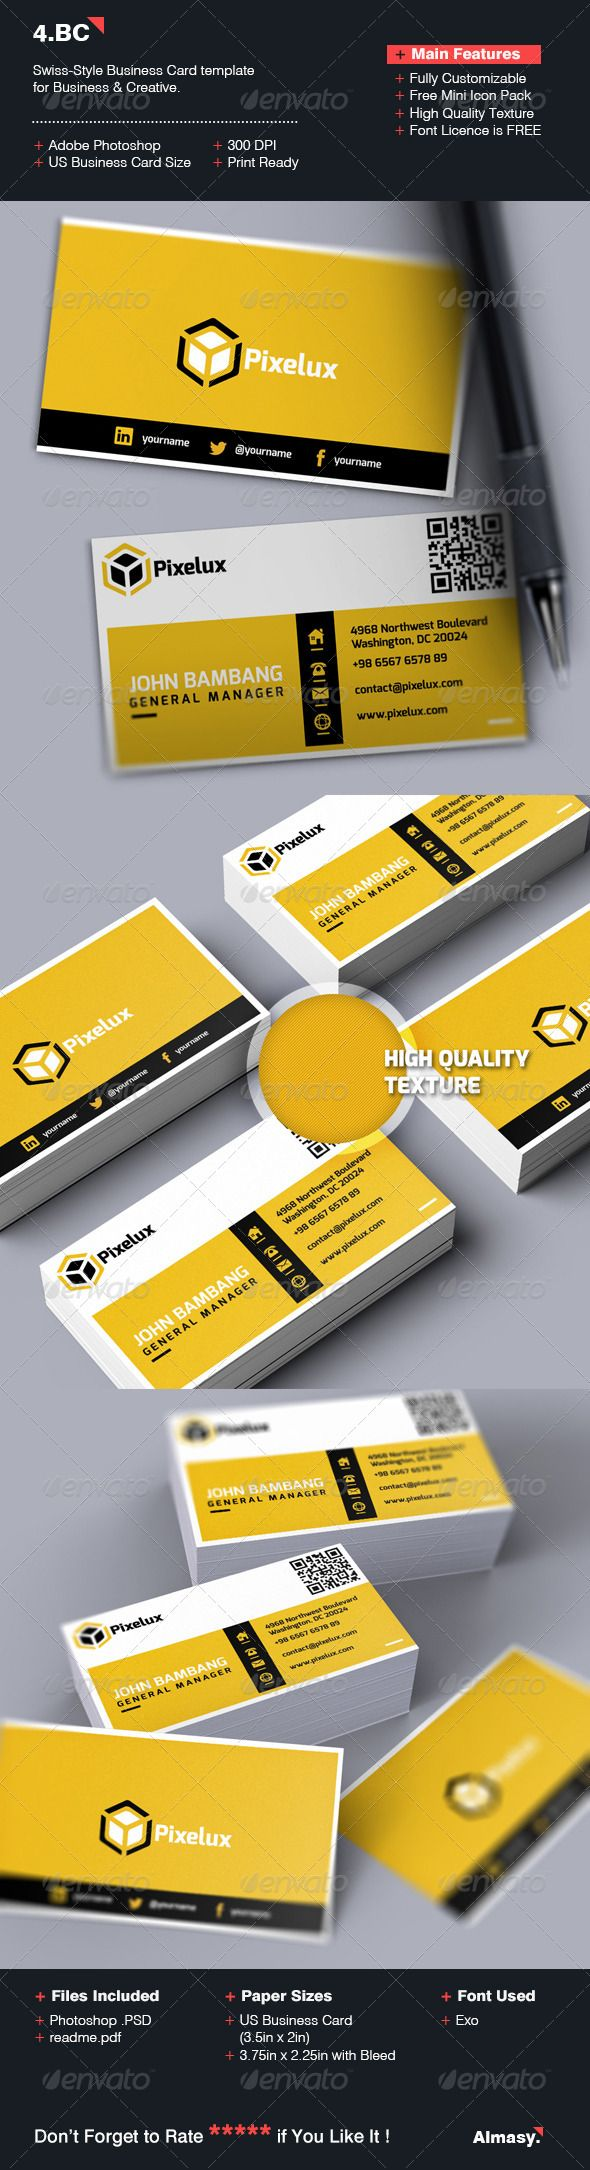 Business Card Printers Washington Dc Choice Image - Card Design And ...